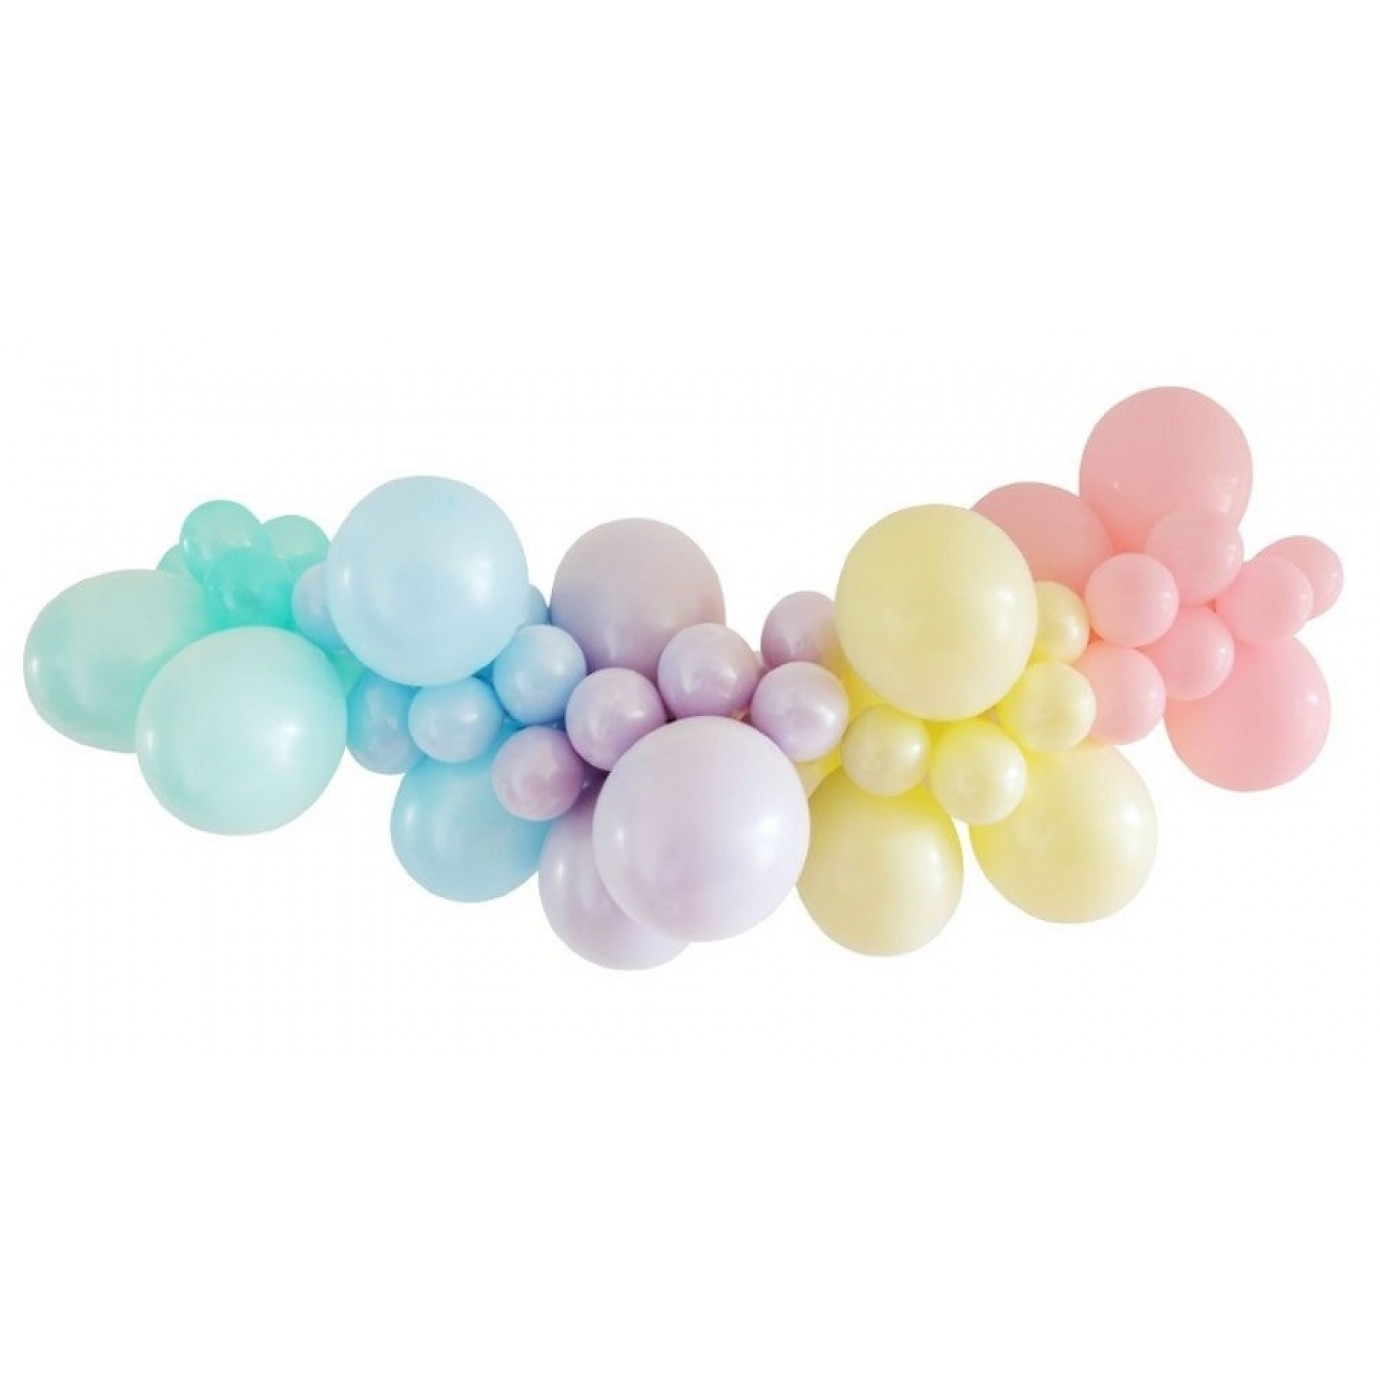 Balloon Garland Kit Pastel Balloon Decore Balloons Decorating Party Supplies The Party People Shop